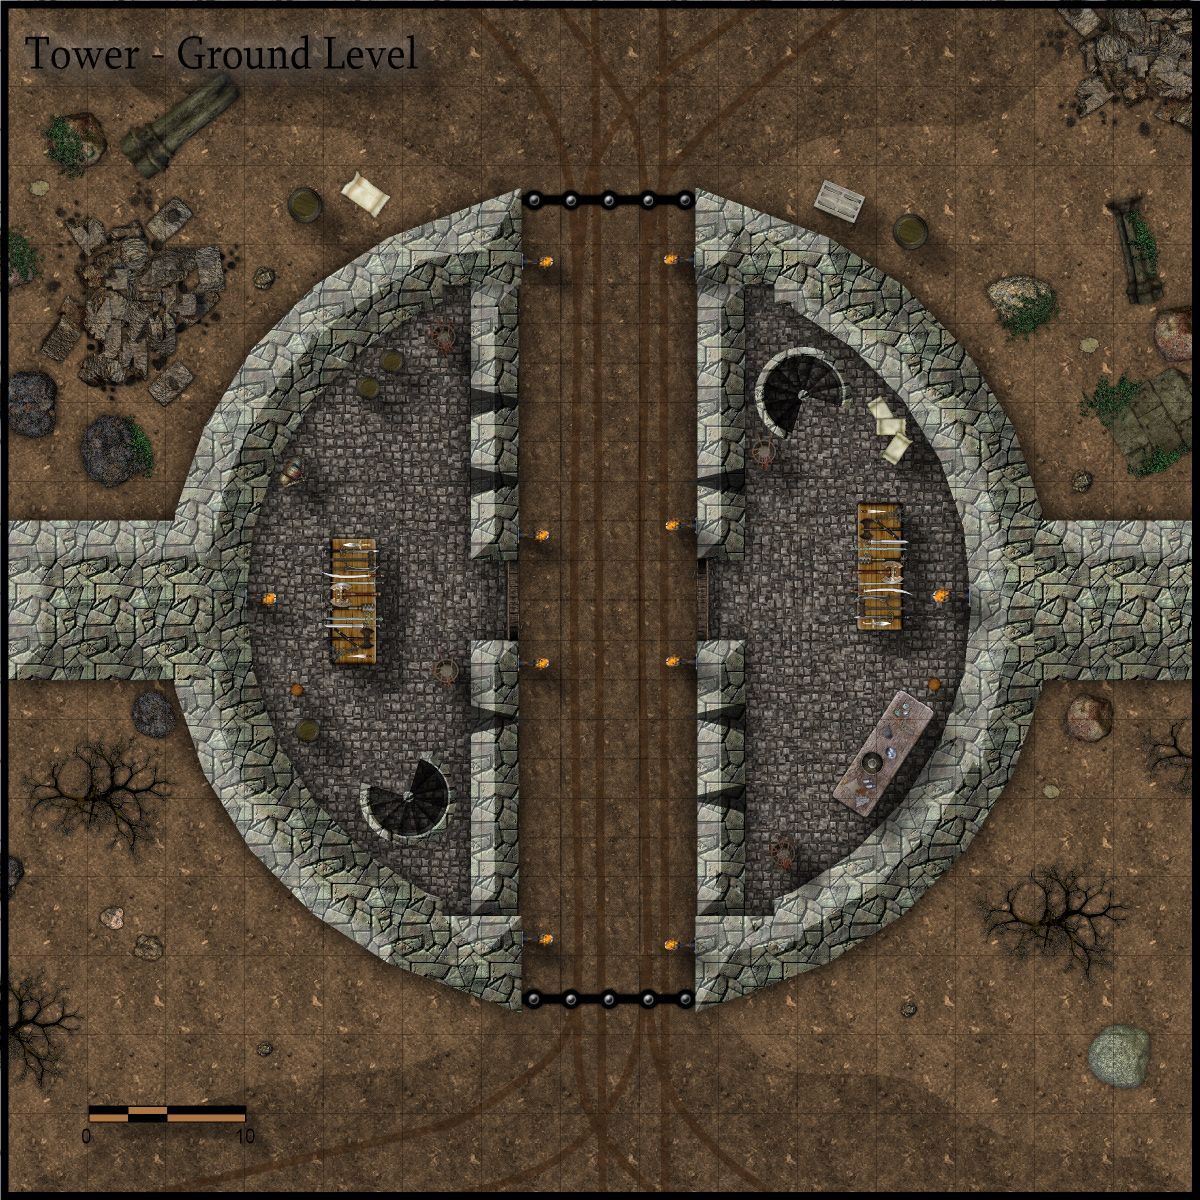 anomiecoalition-albums-brightstone+keep-picture46397-tower-ground-level-cc3.JPG (immagine JPEG, 1200×1200 pixel)